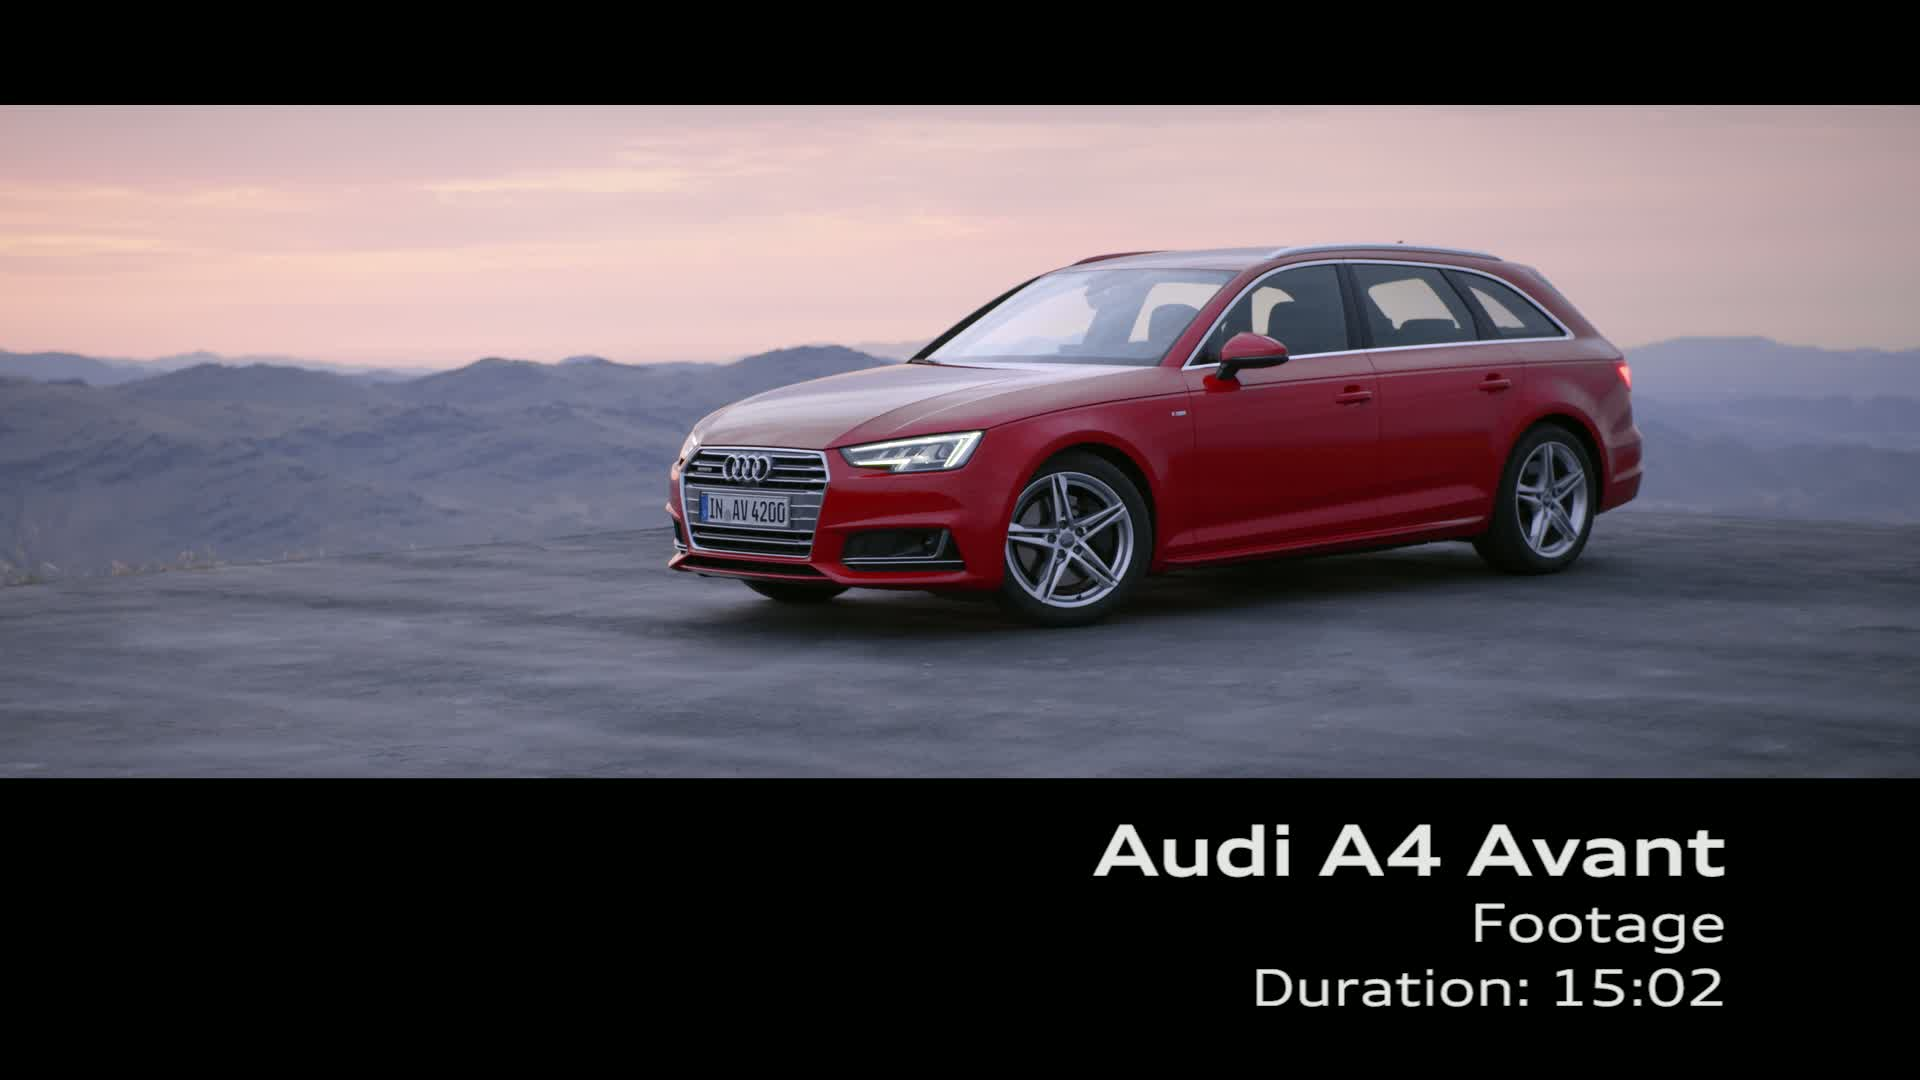 The new Audi A4 Avant - Footage